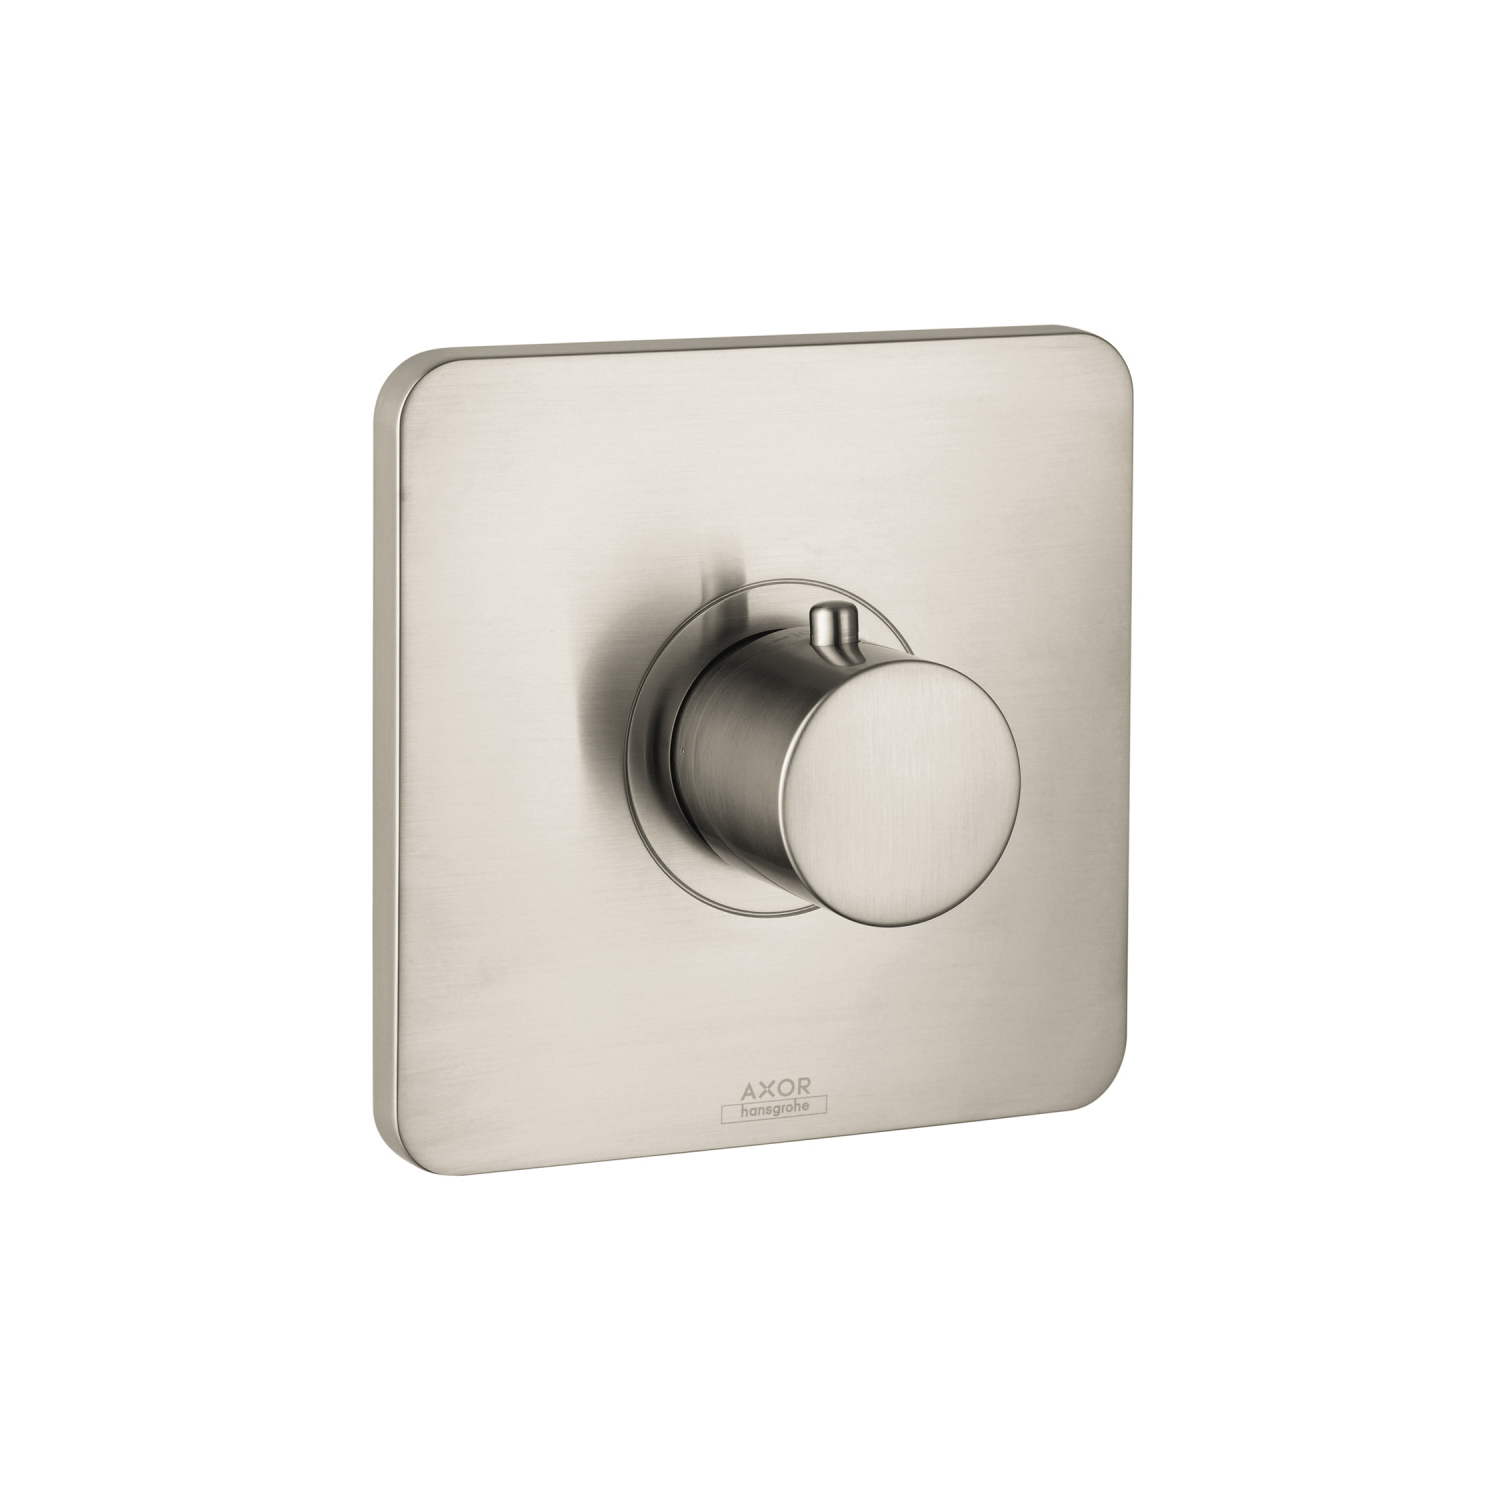 Hansgrohe 34714821 Axor Citterio M High Flow Thermostatic Trim, Hand Shower Yes/No: No, Brushed Nickel